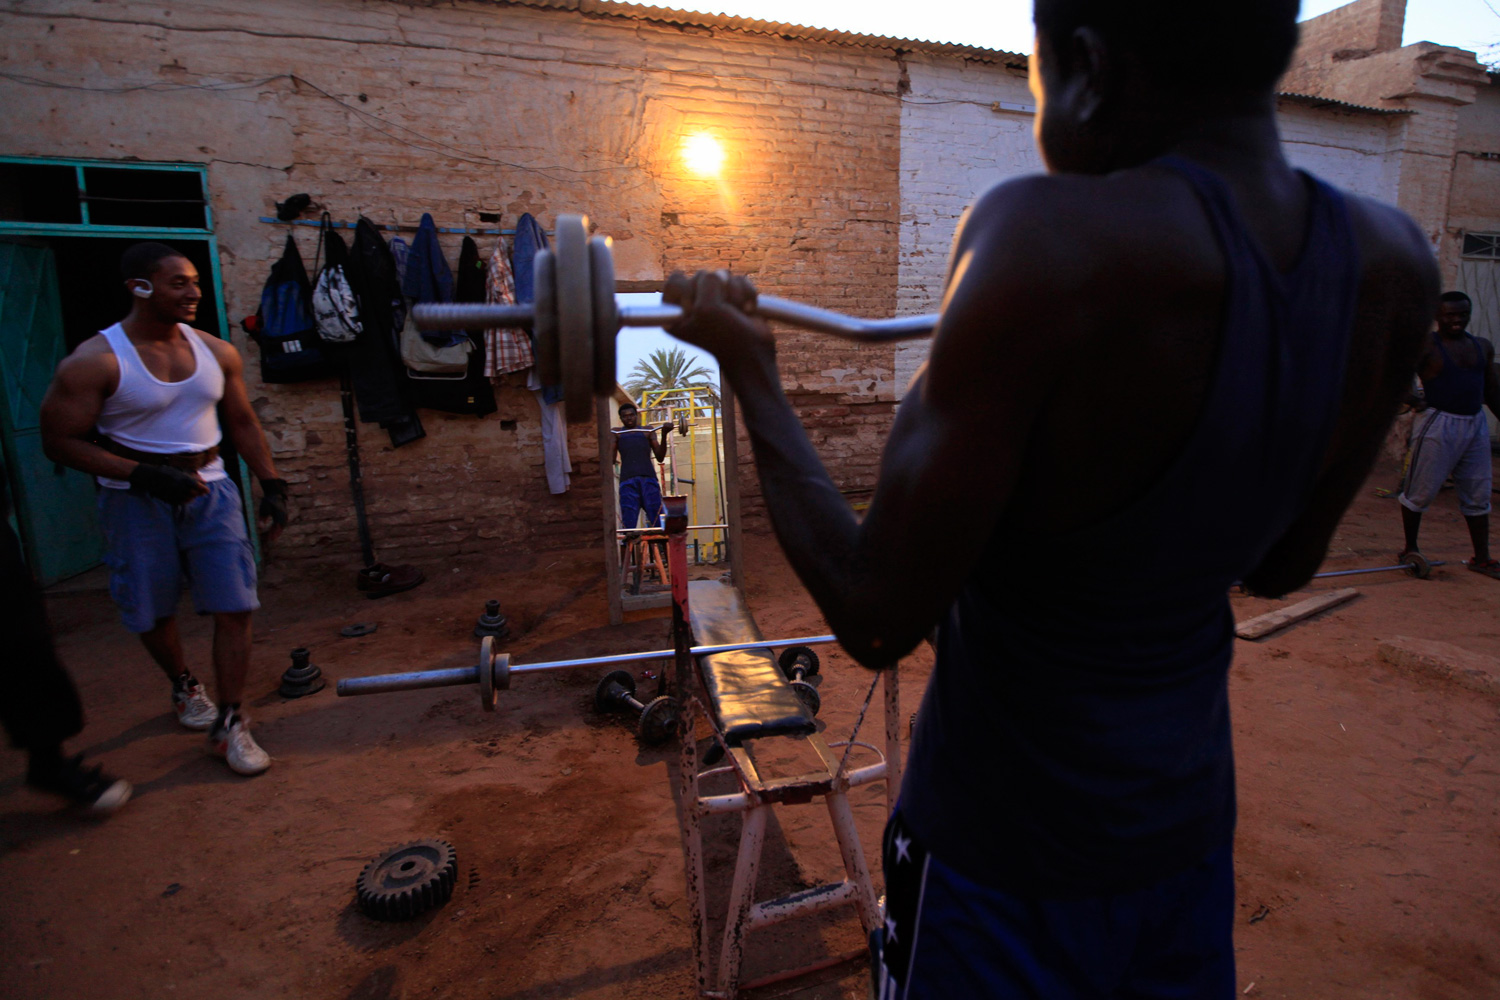 Feb. 28, 2012. A member of the national weightlifting team lifts weights as he prepares to compete with other athletes for the selection of the Olympics team in Khartoum, Sudan.